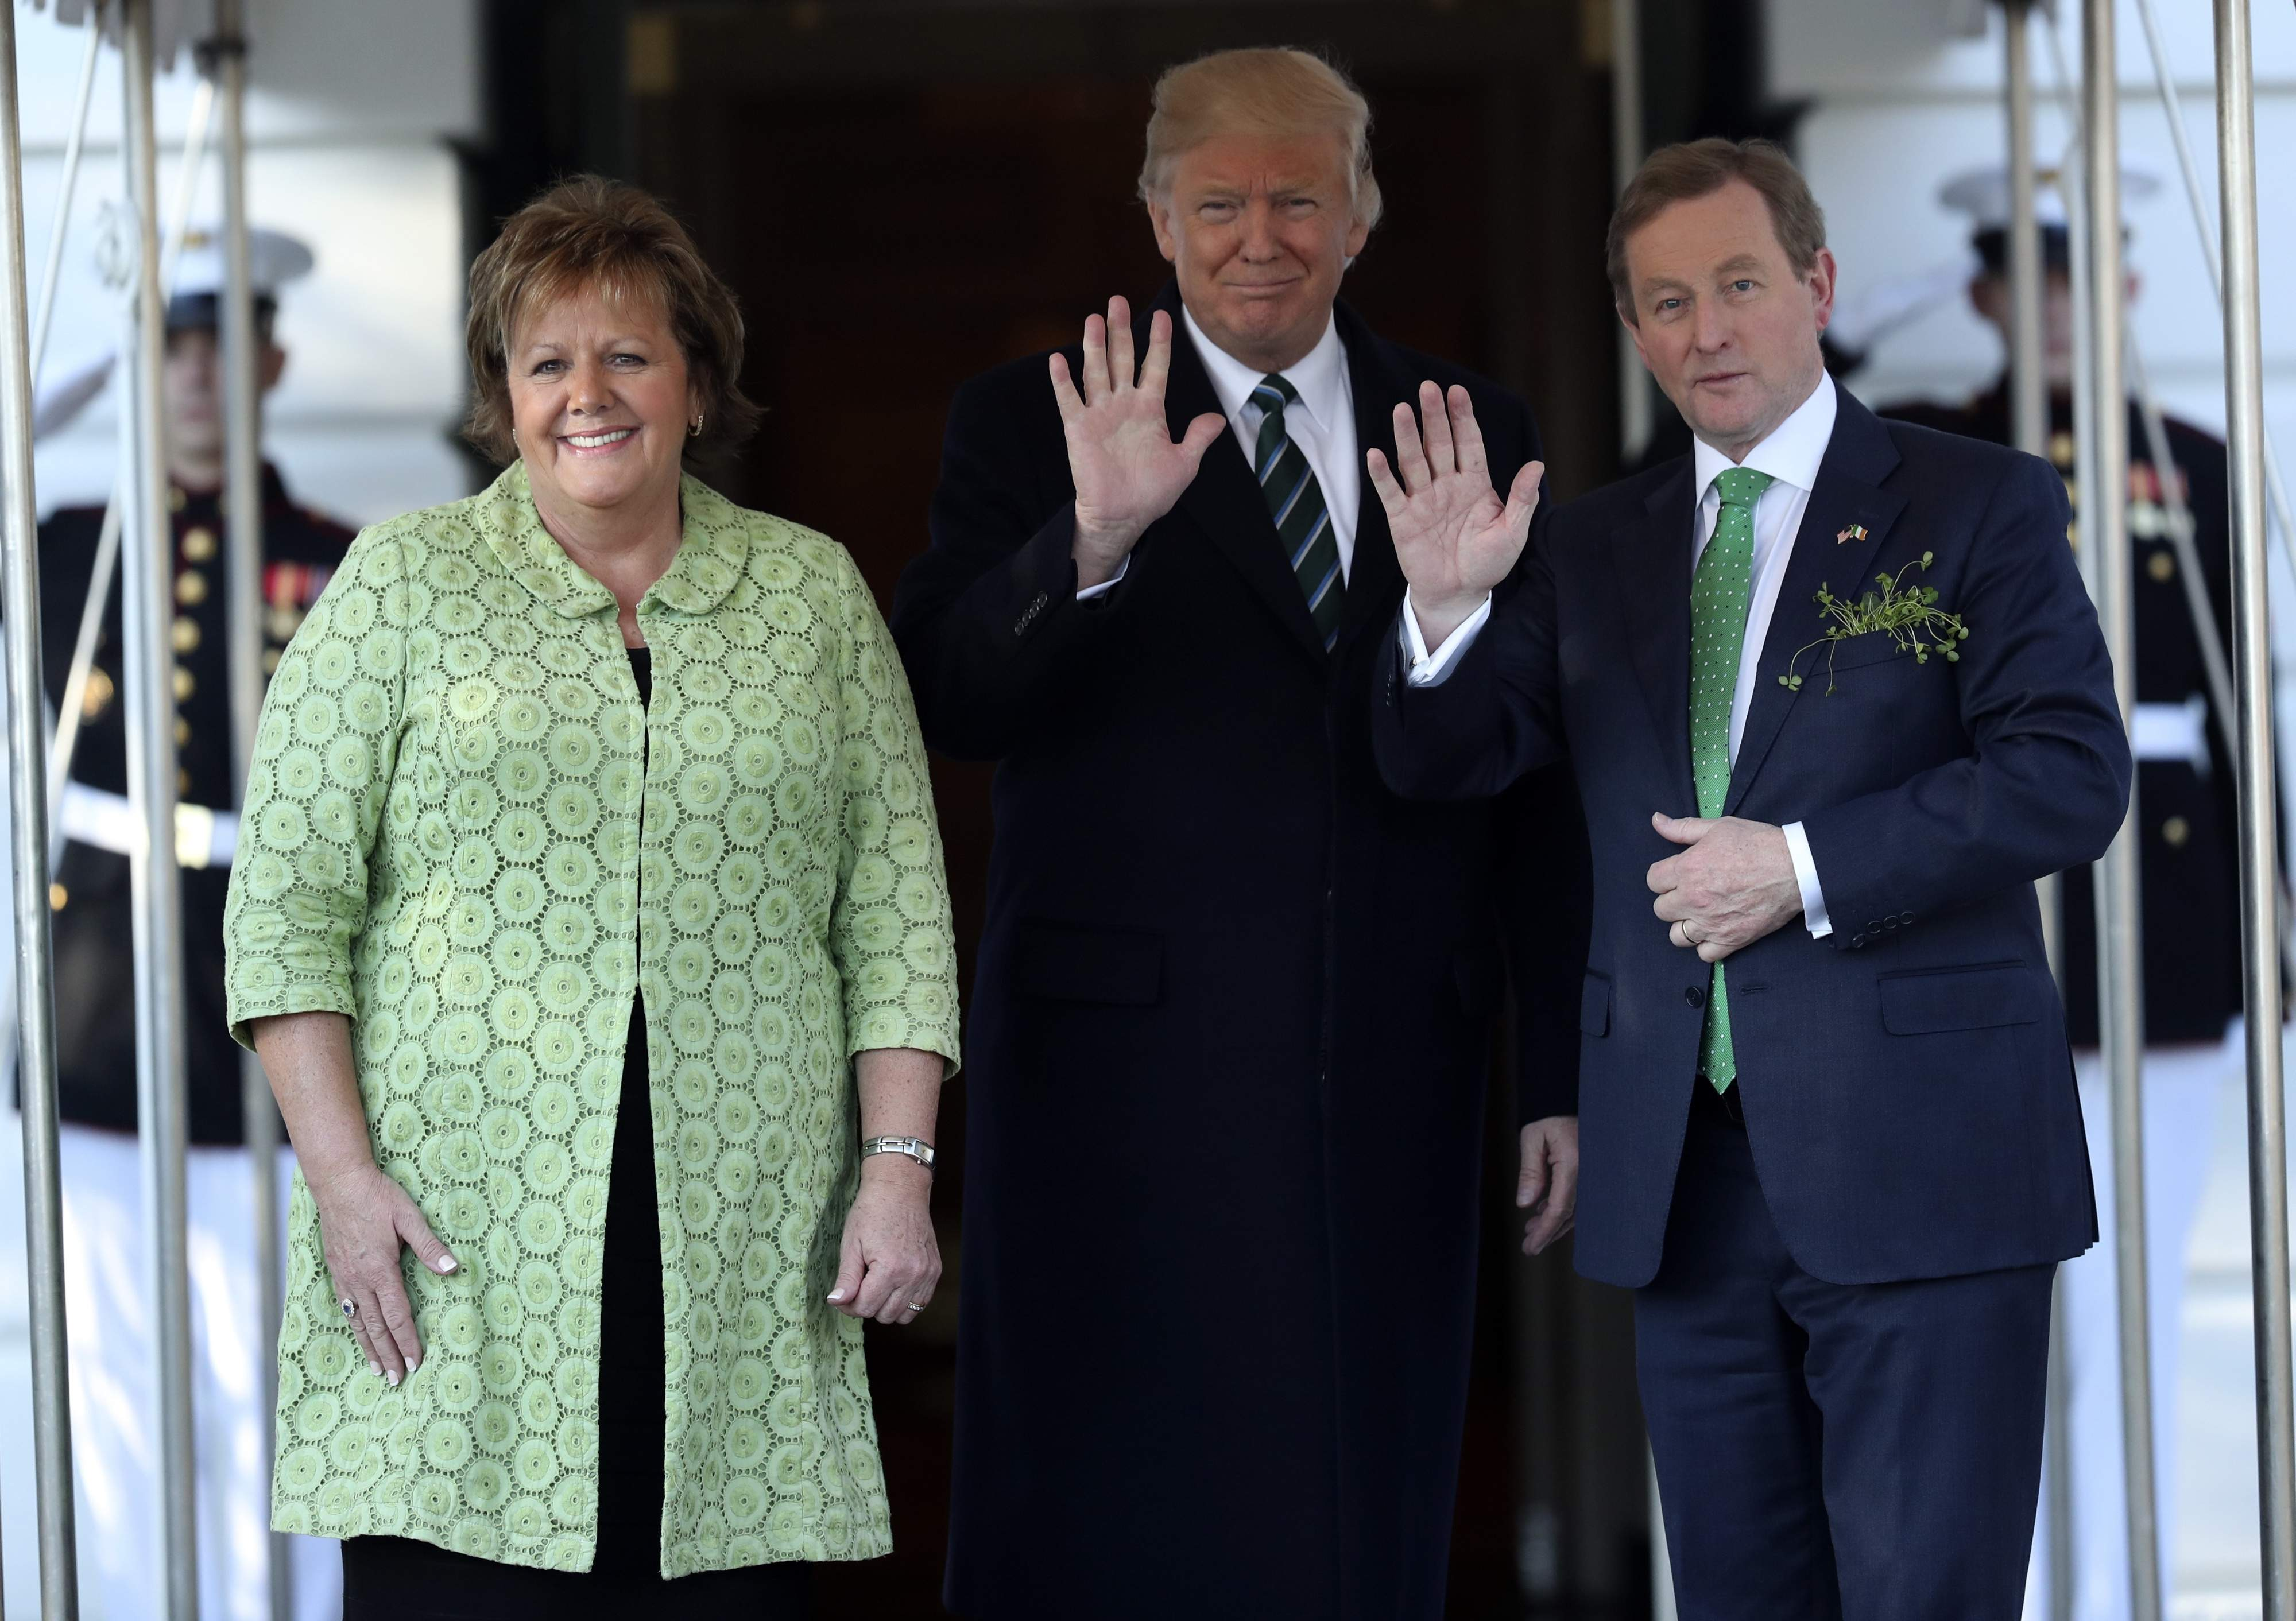 DAY 56 - In this March 16, 2017, file photo, President Donald Trump waves as he greets Irish Prime Minister Enda Kenny and his wife Fionnuala Kenny, left, on the South Lawn of the White House in Washington. (AP Photo/Andrew Harnik, File)